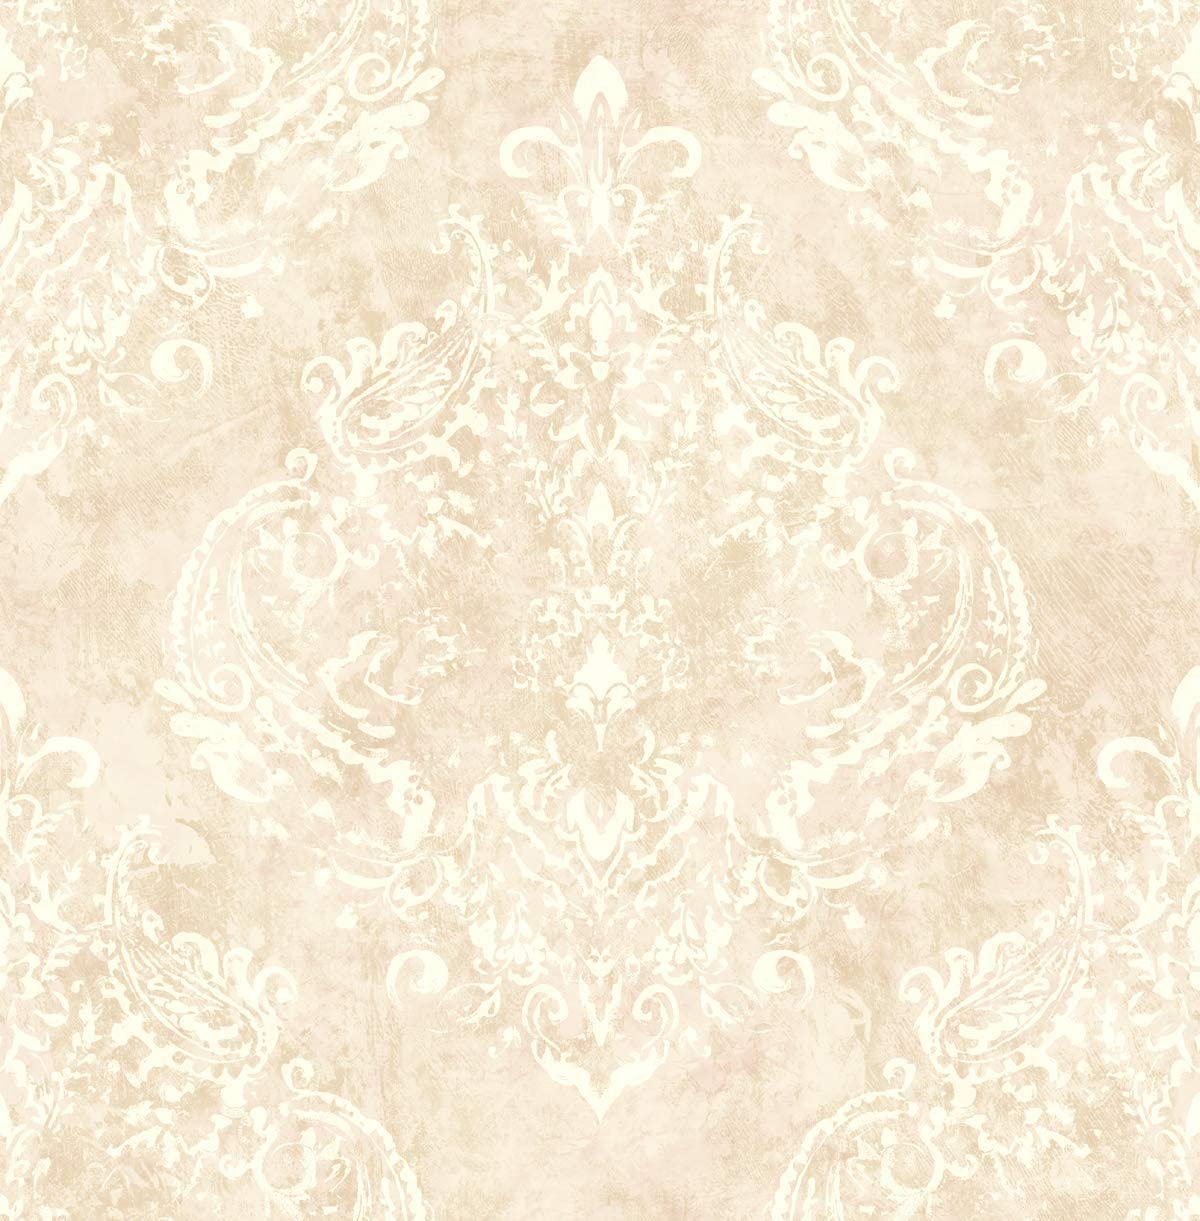 Victorian Damask Cream Wallpaper with Pale Purple Lilac Arts and Crafts Style